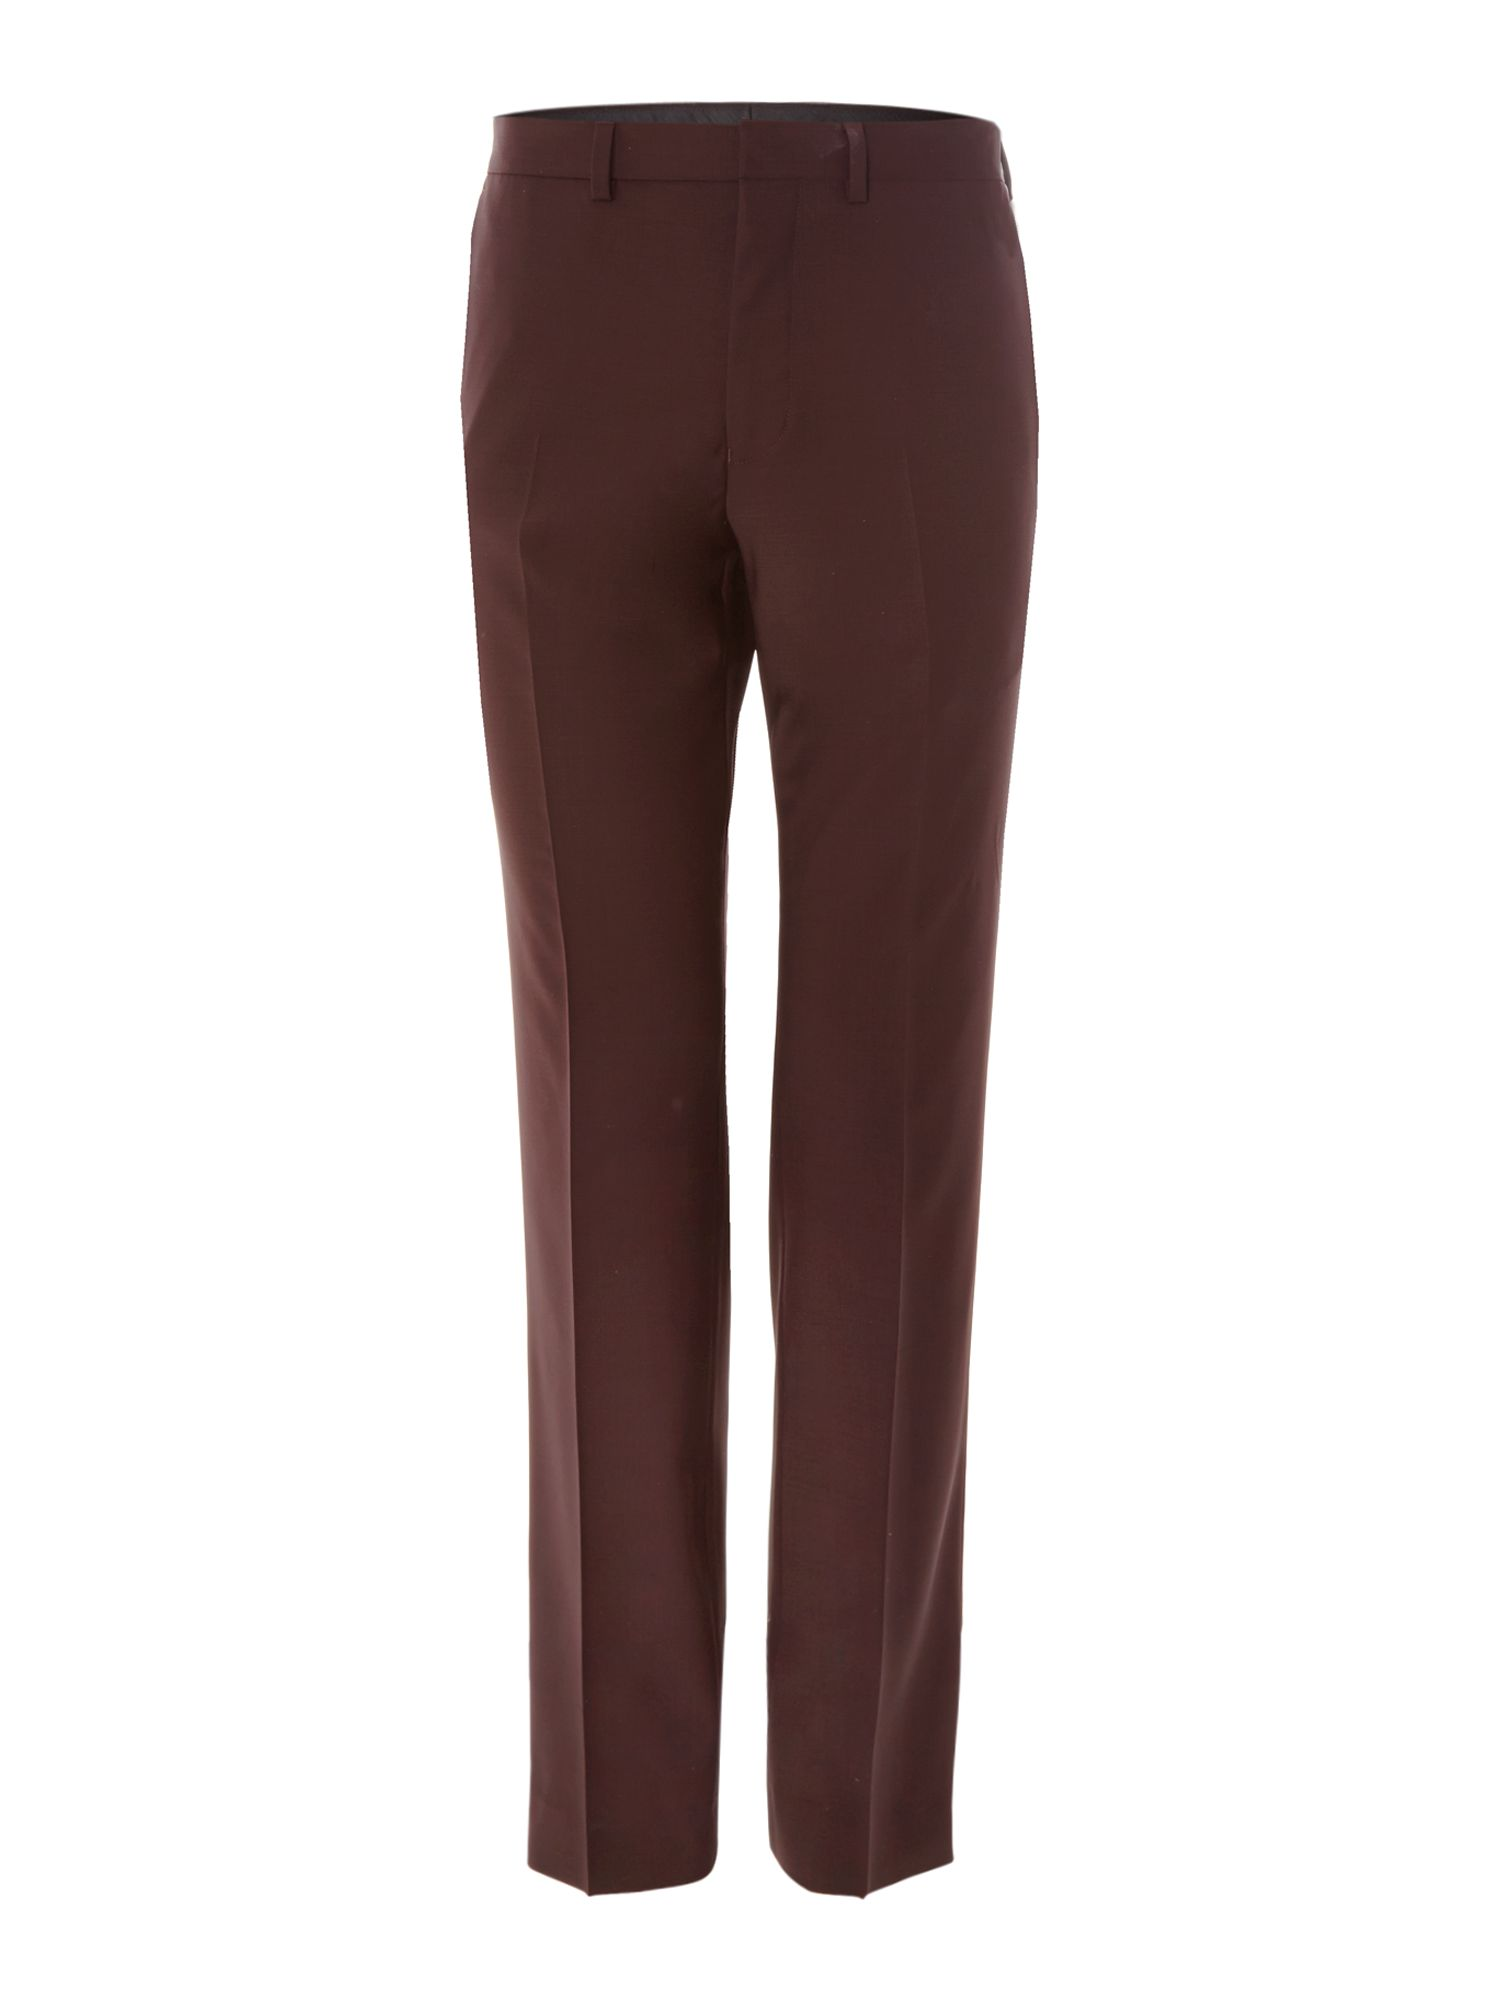 Satin trimmed slim fit trousers